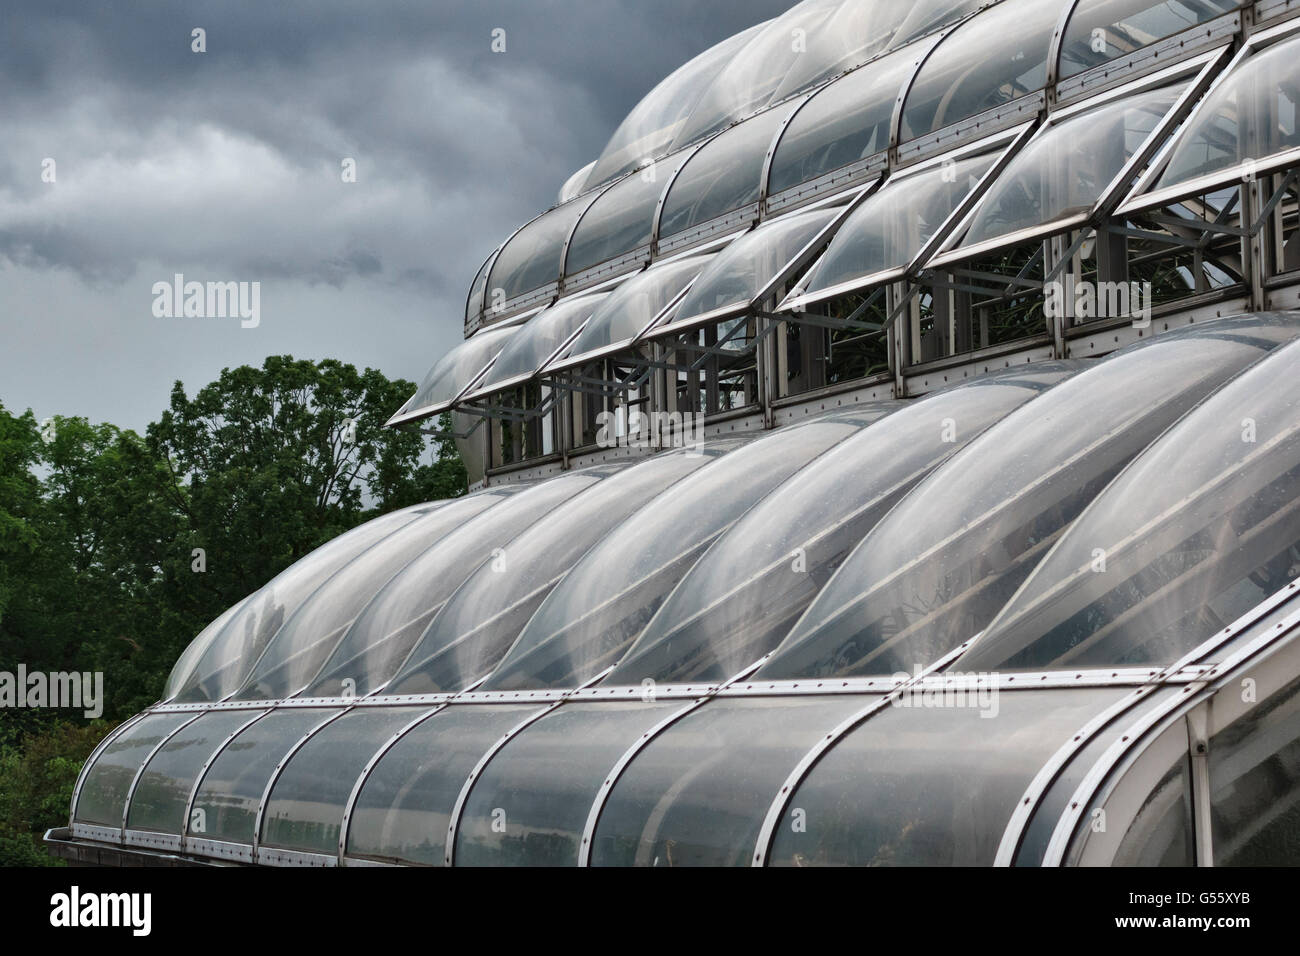 Berlin, Germany - the Berlin-Dahlem Botanical Garden. Roof detail of one of the greenhouses, approaching storm - Stock Image